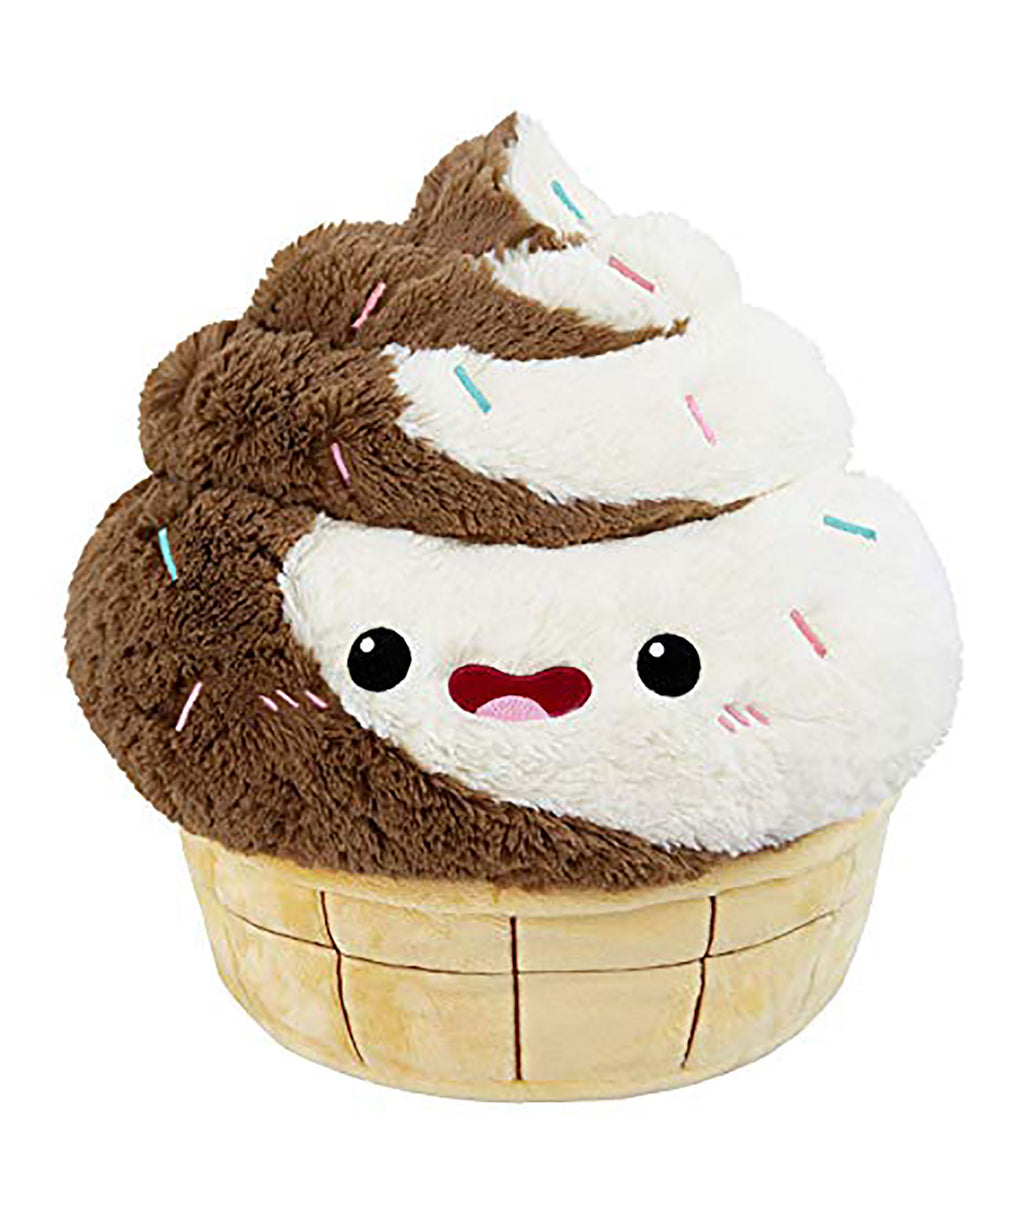 Squishable Regular Swirl Soft Serve